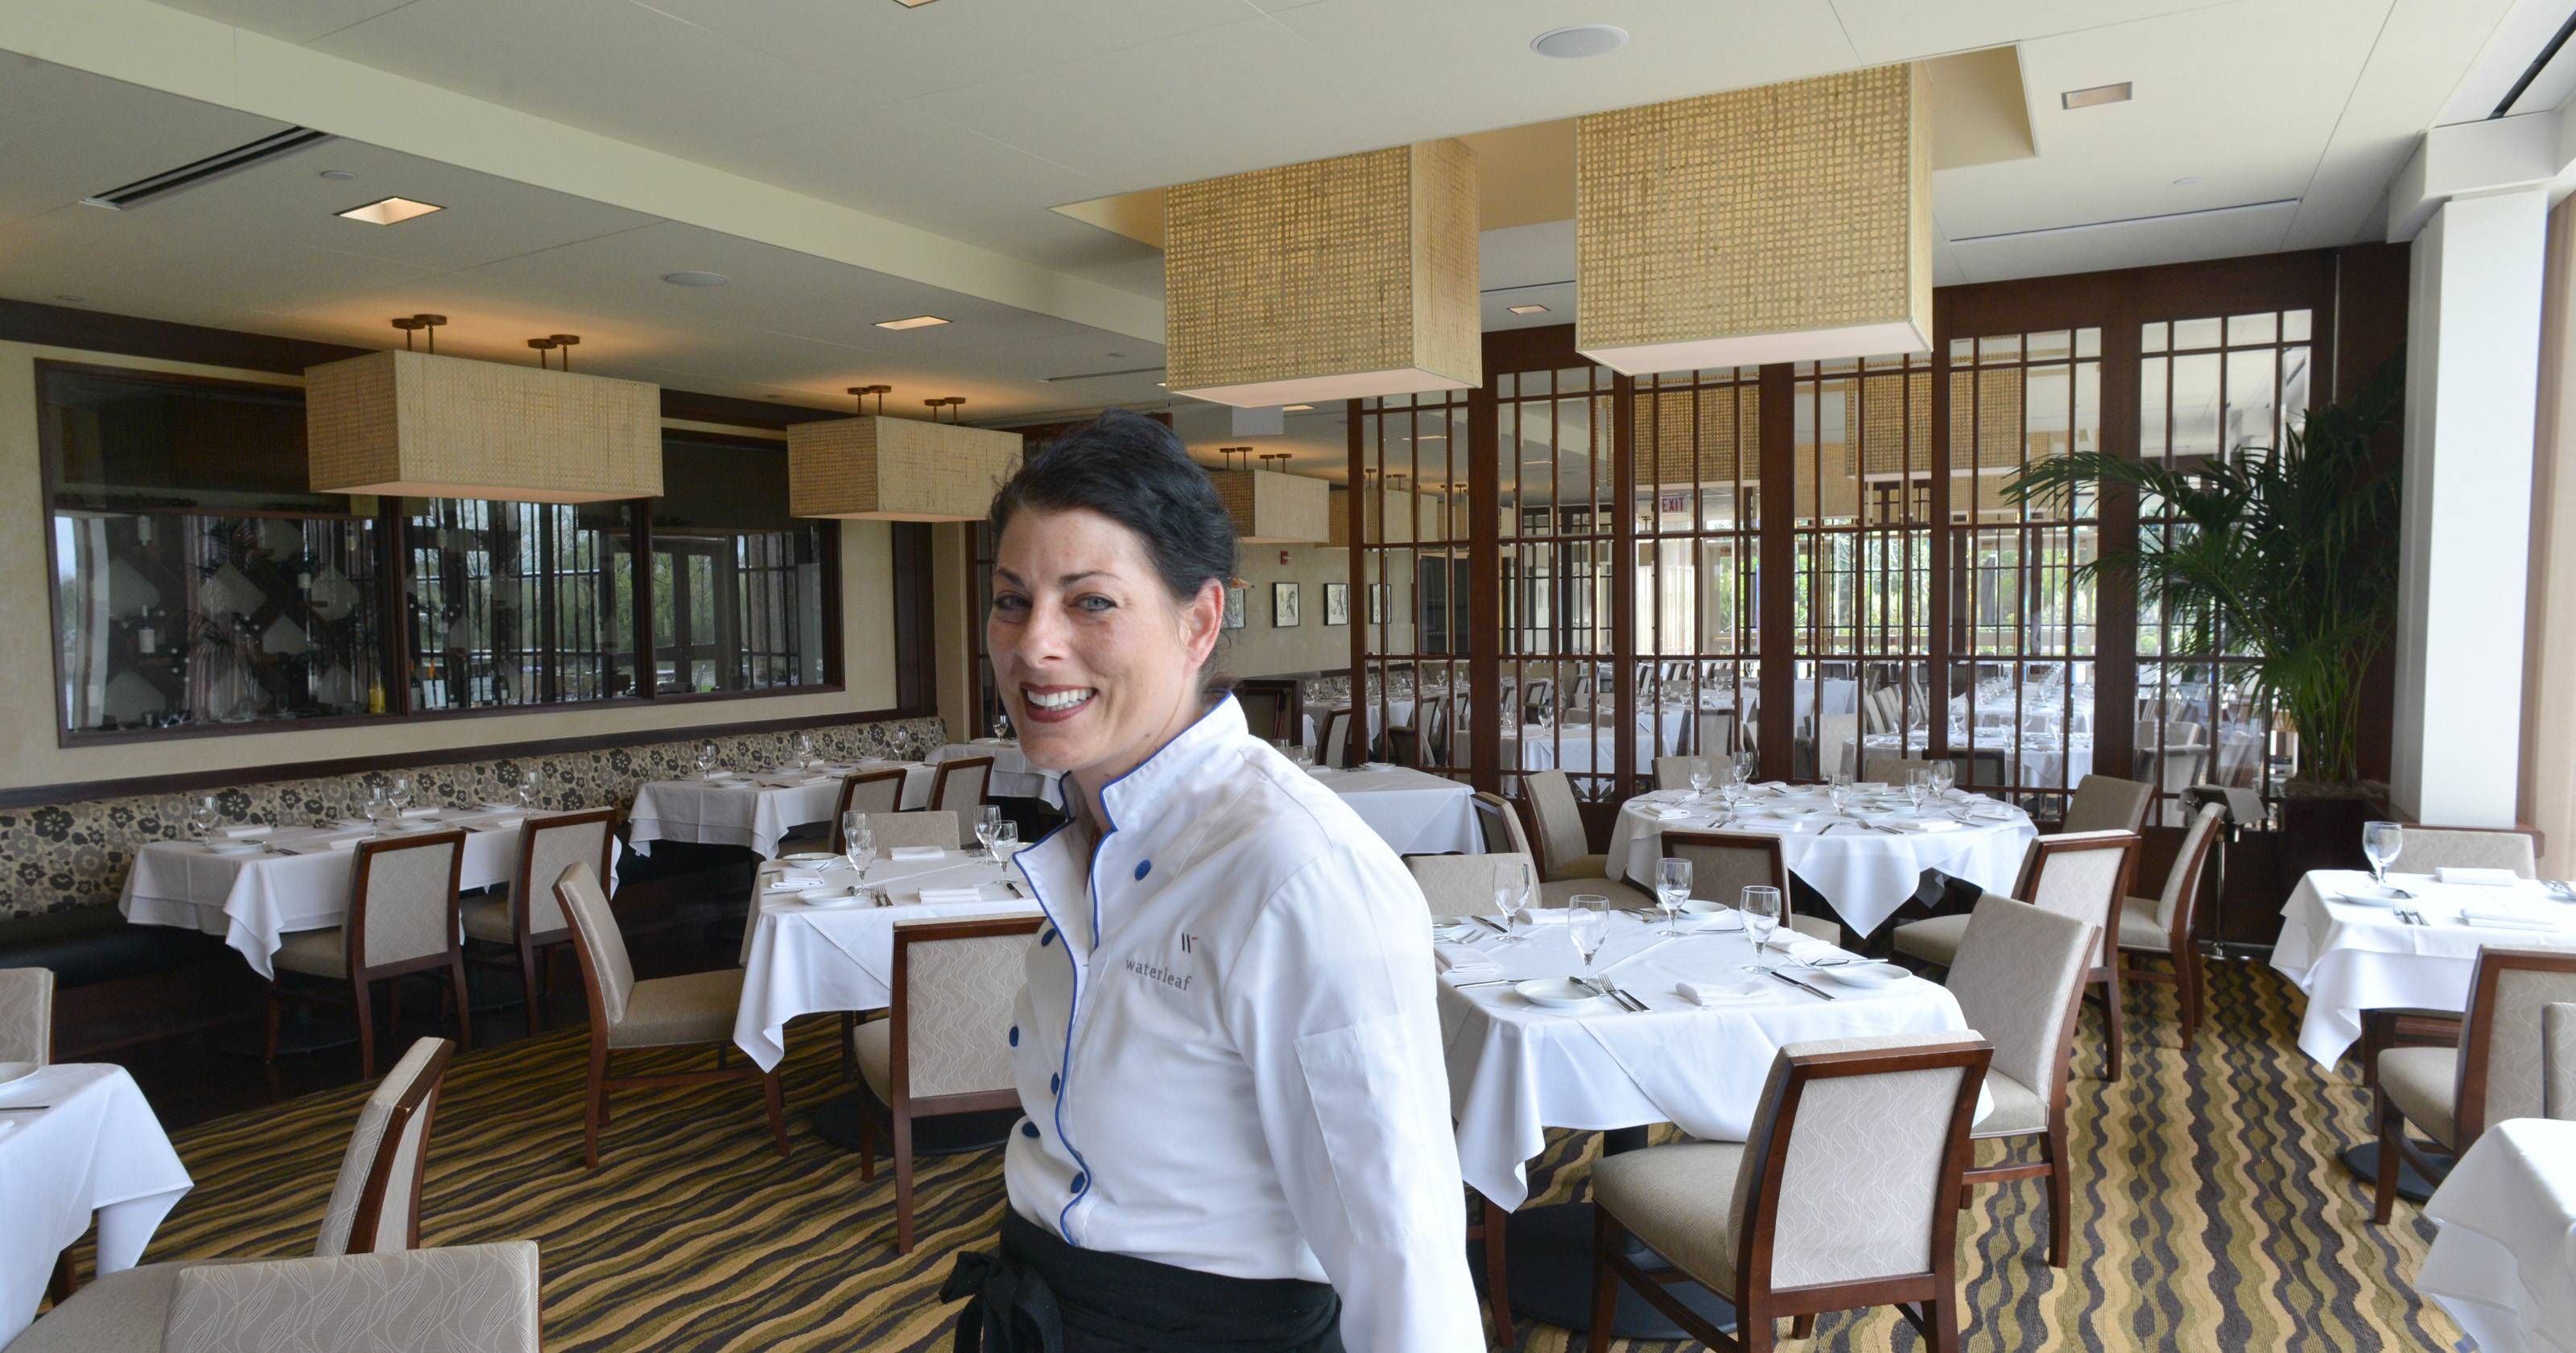 Celebrated chef Nadia Tilkian oversees the kitchen at Waterleaf, an upscale restaurant located on the campus of College of DuPage in Glen Ellyn.